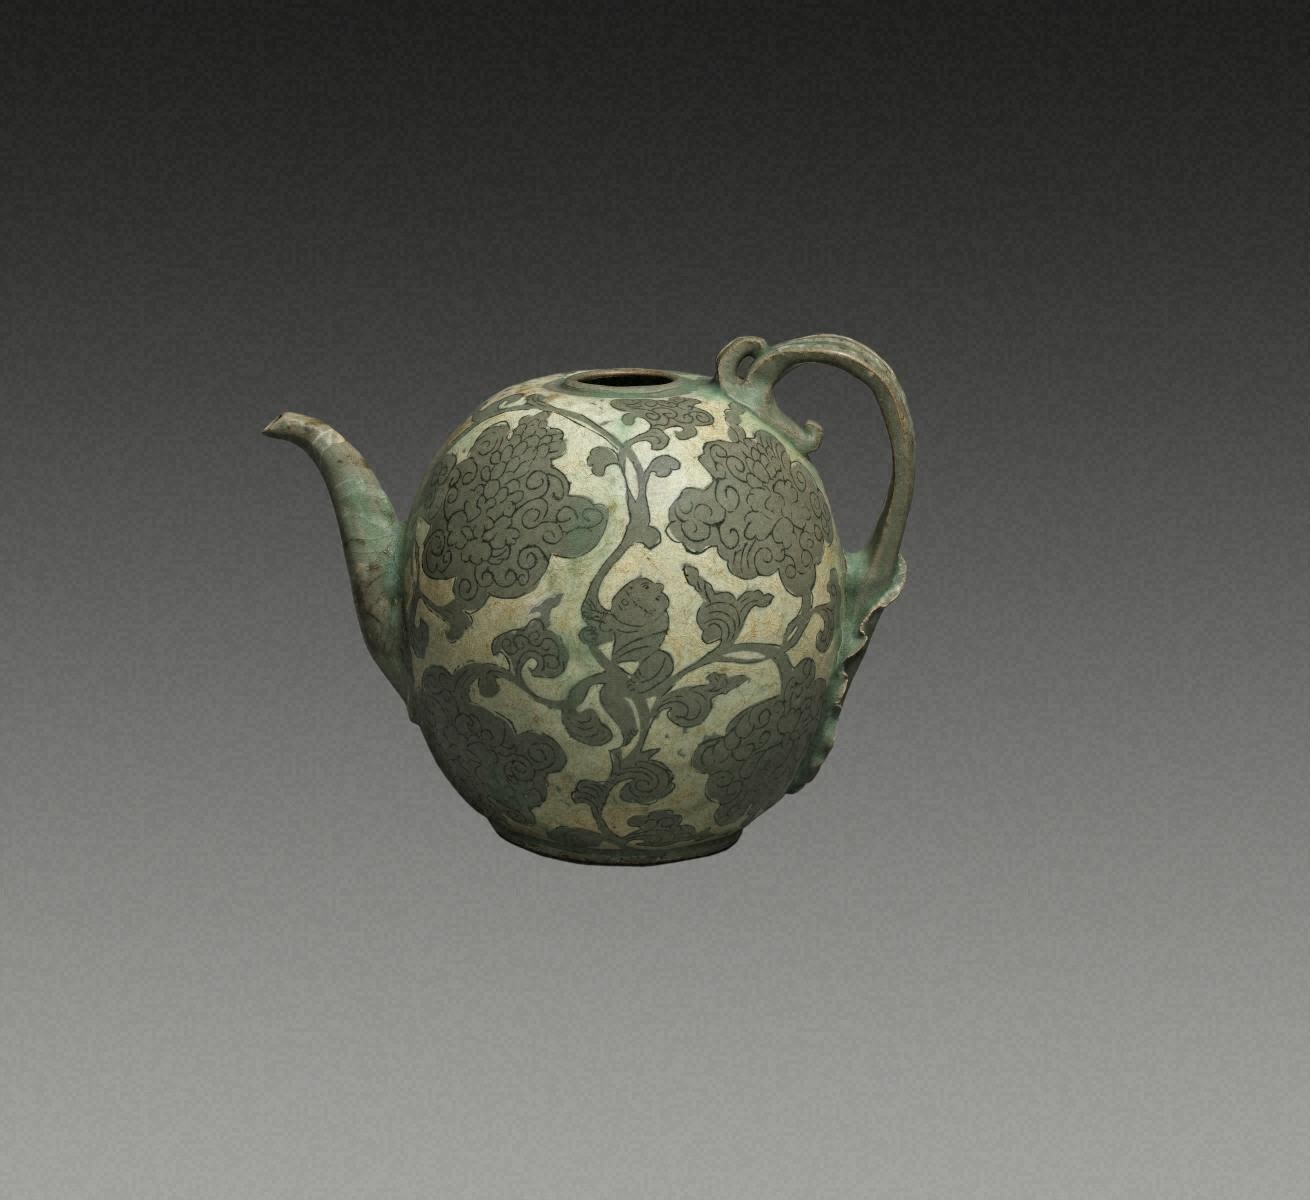 EWER, Celadon with inlaid design of boys and baoxianghua scroll